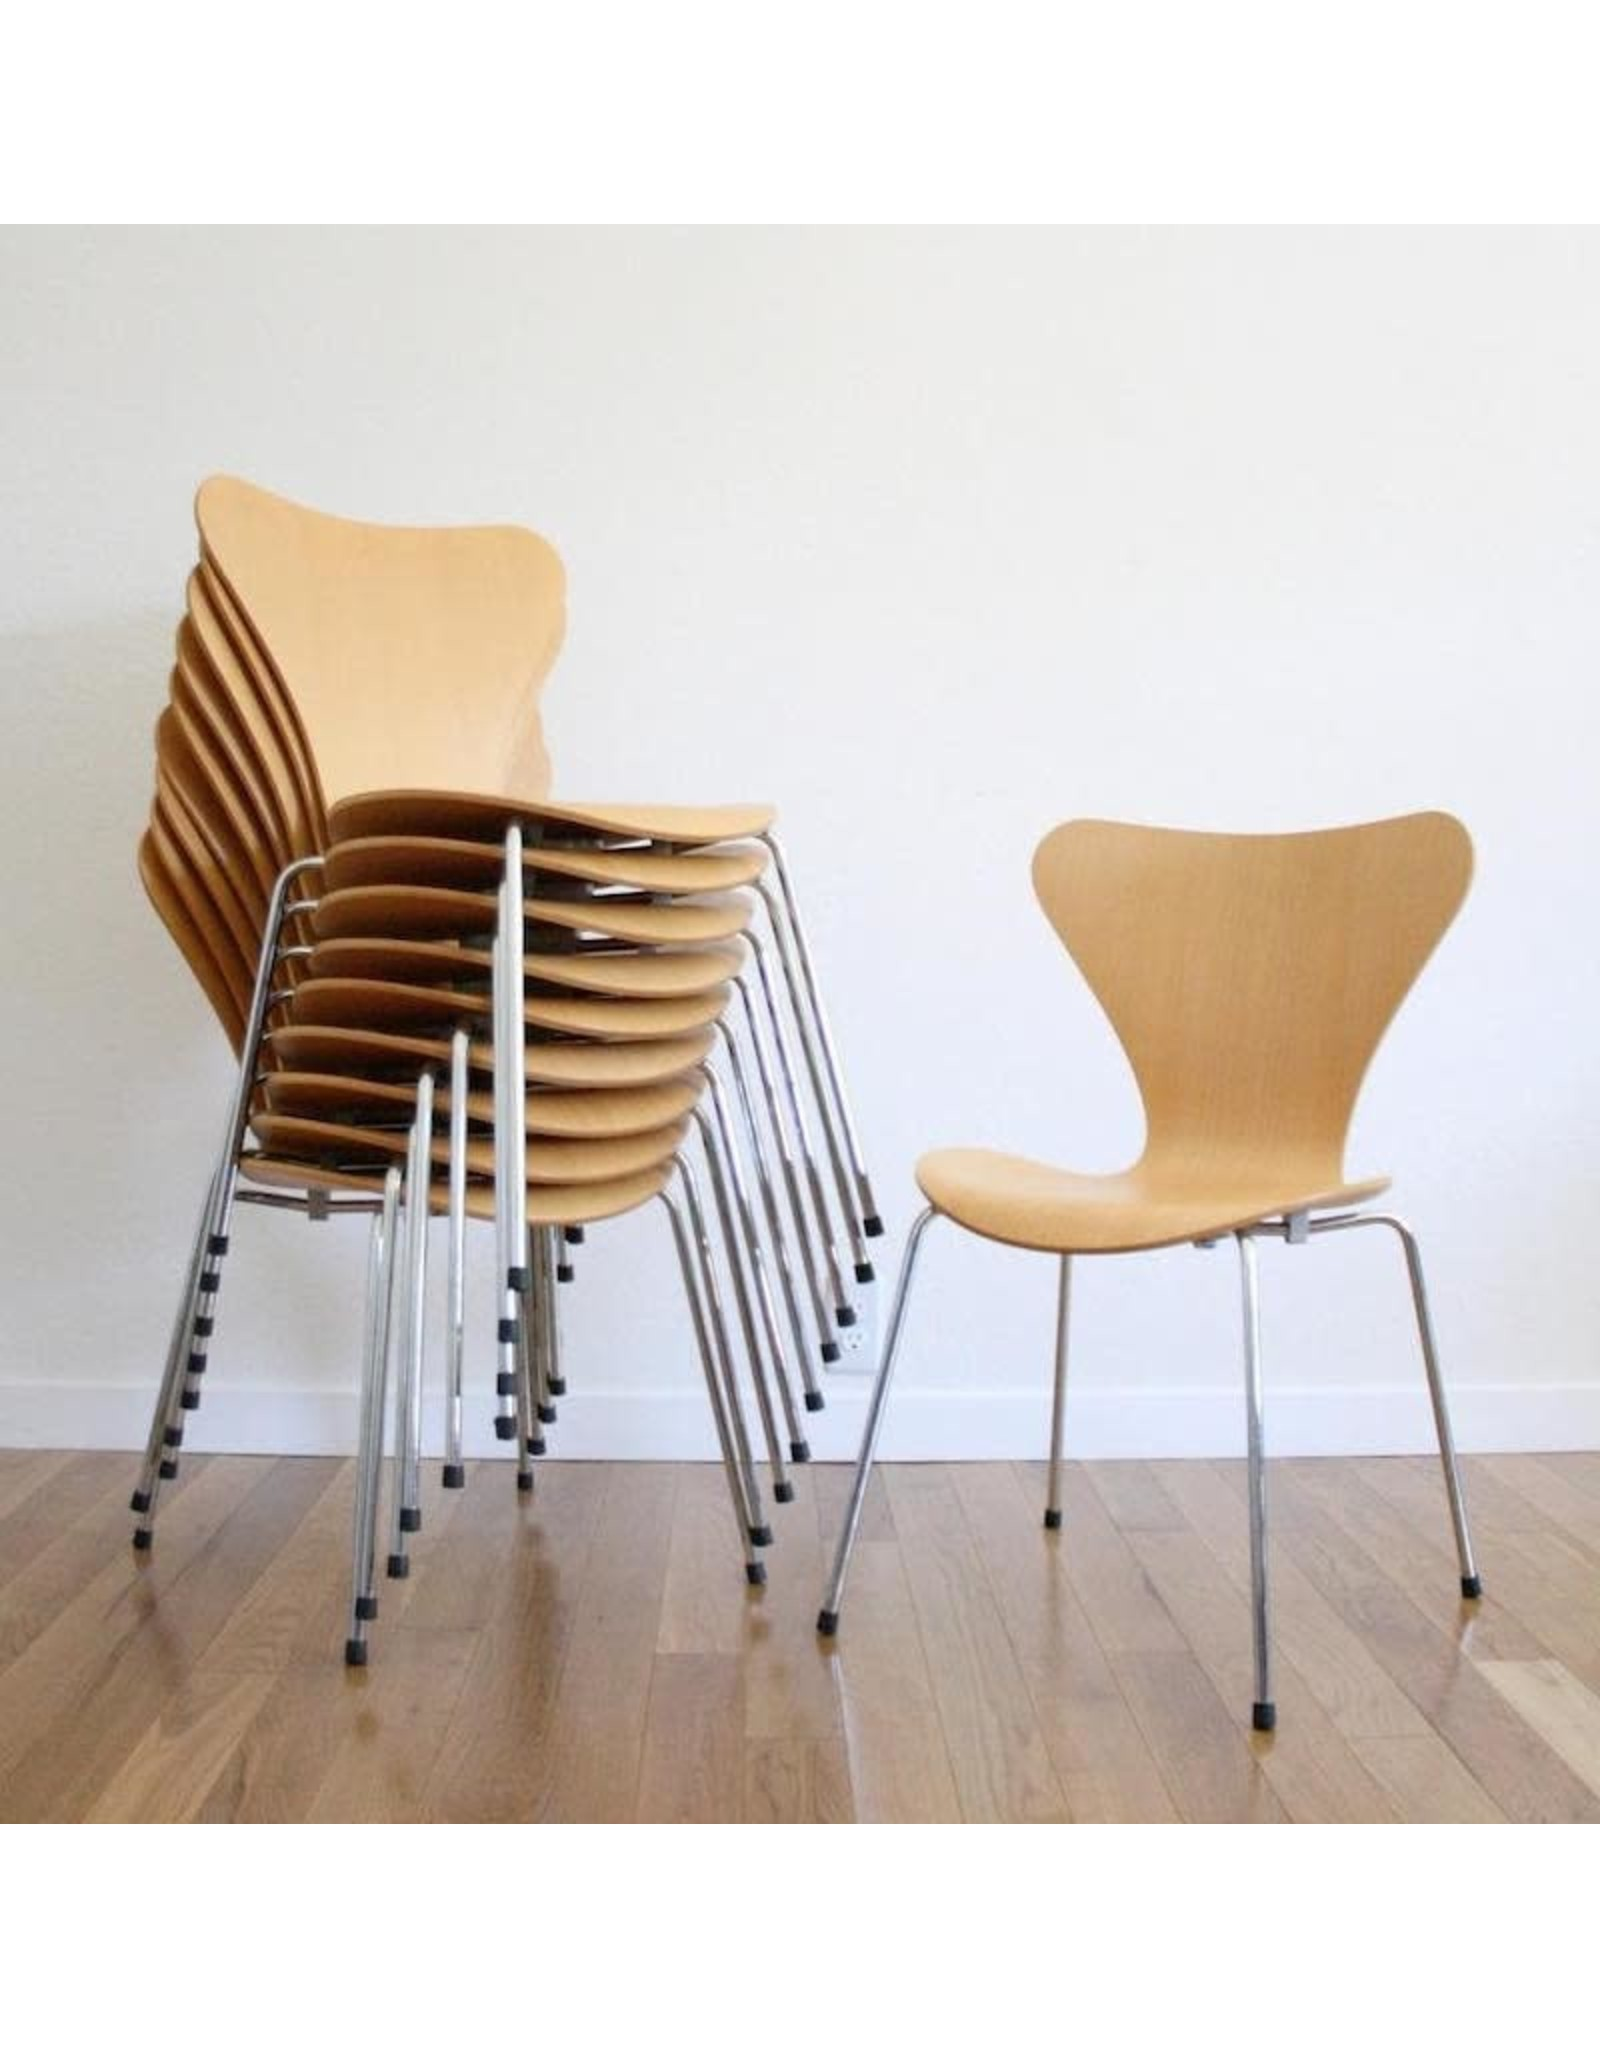 3107 SERIES 7 CHAIR WITH CLEAR LACQUER FINISH